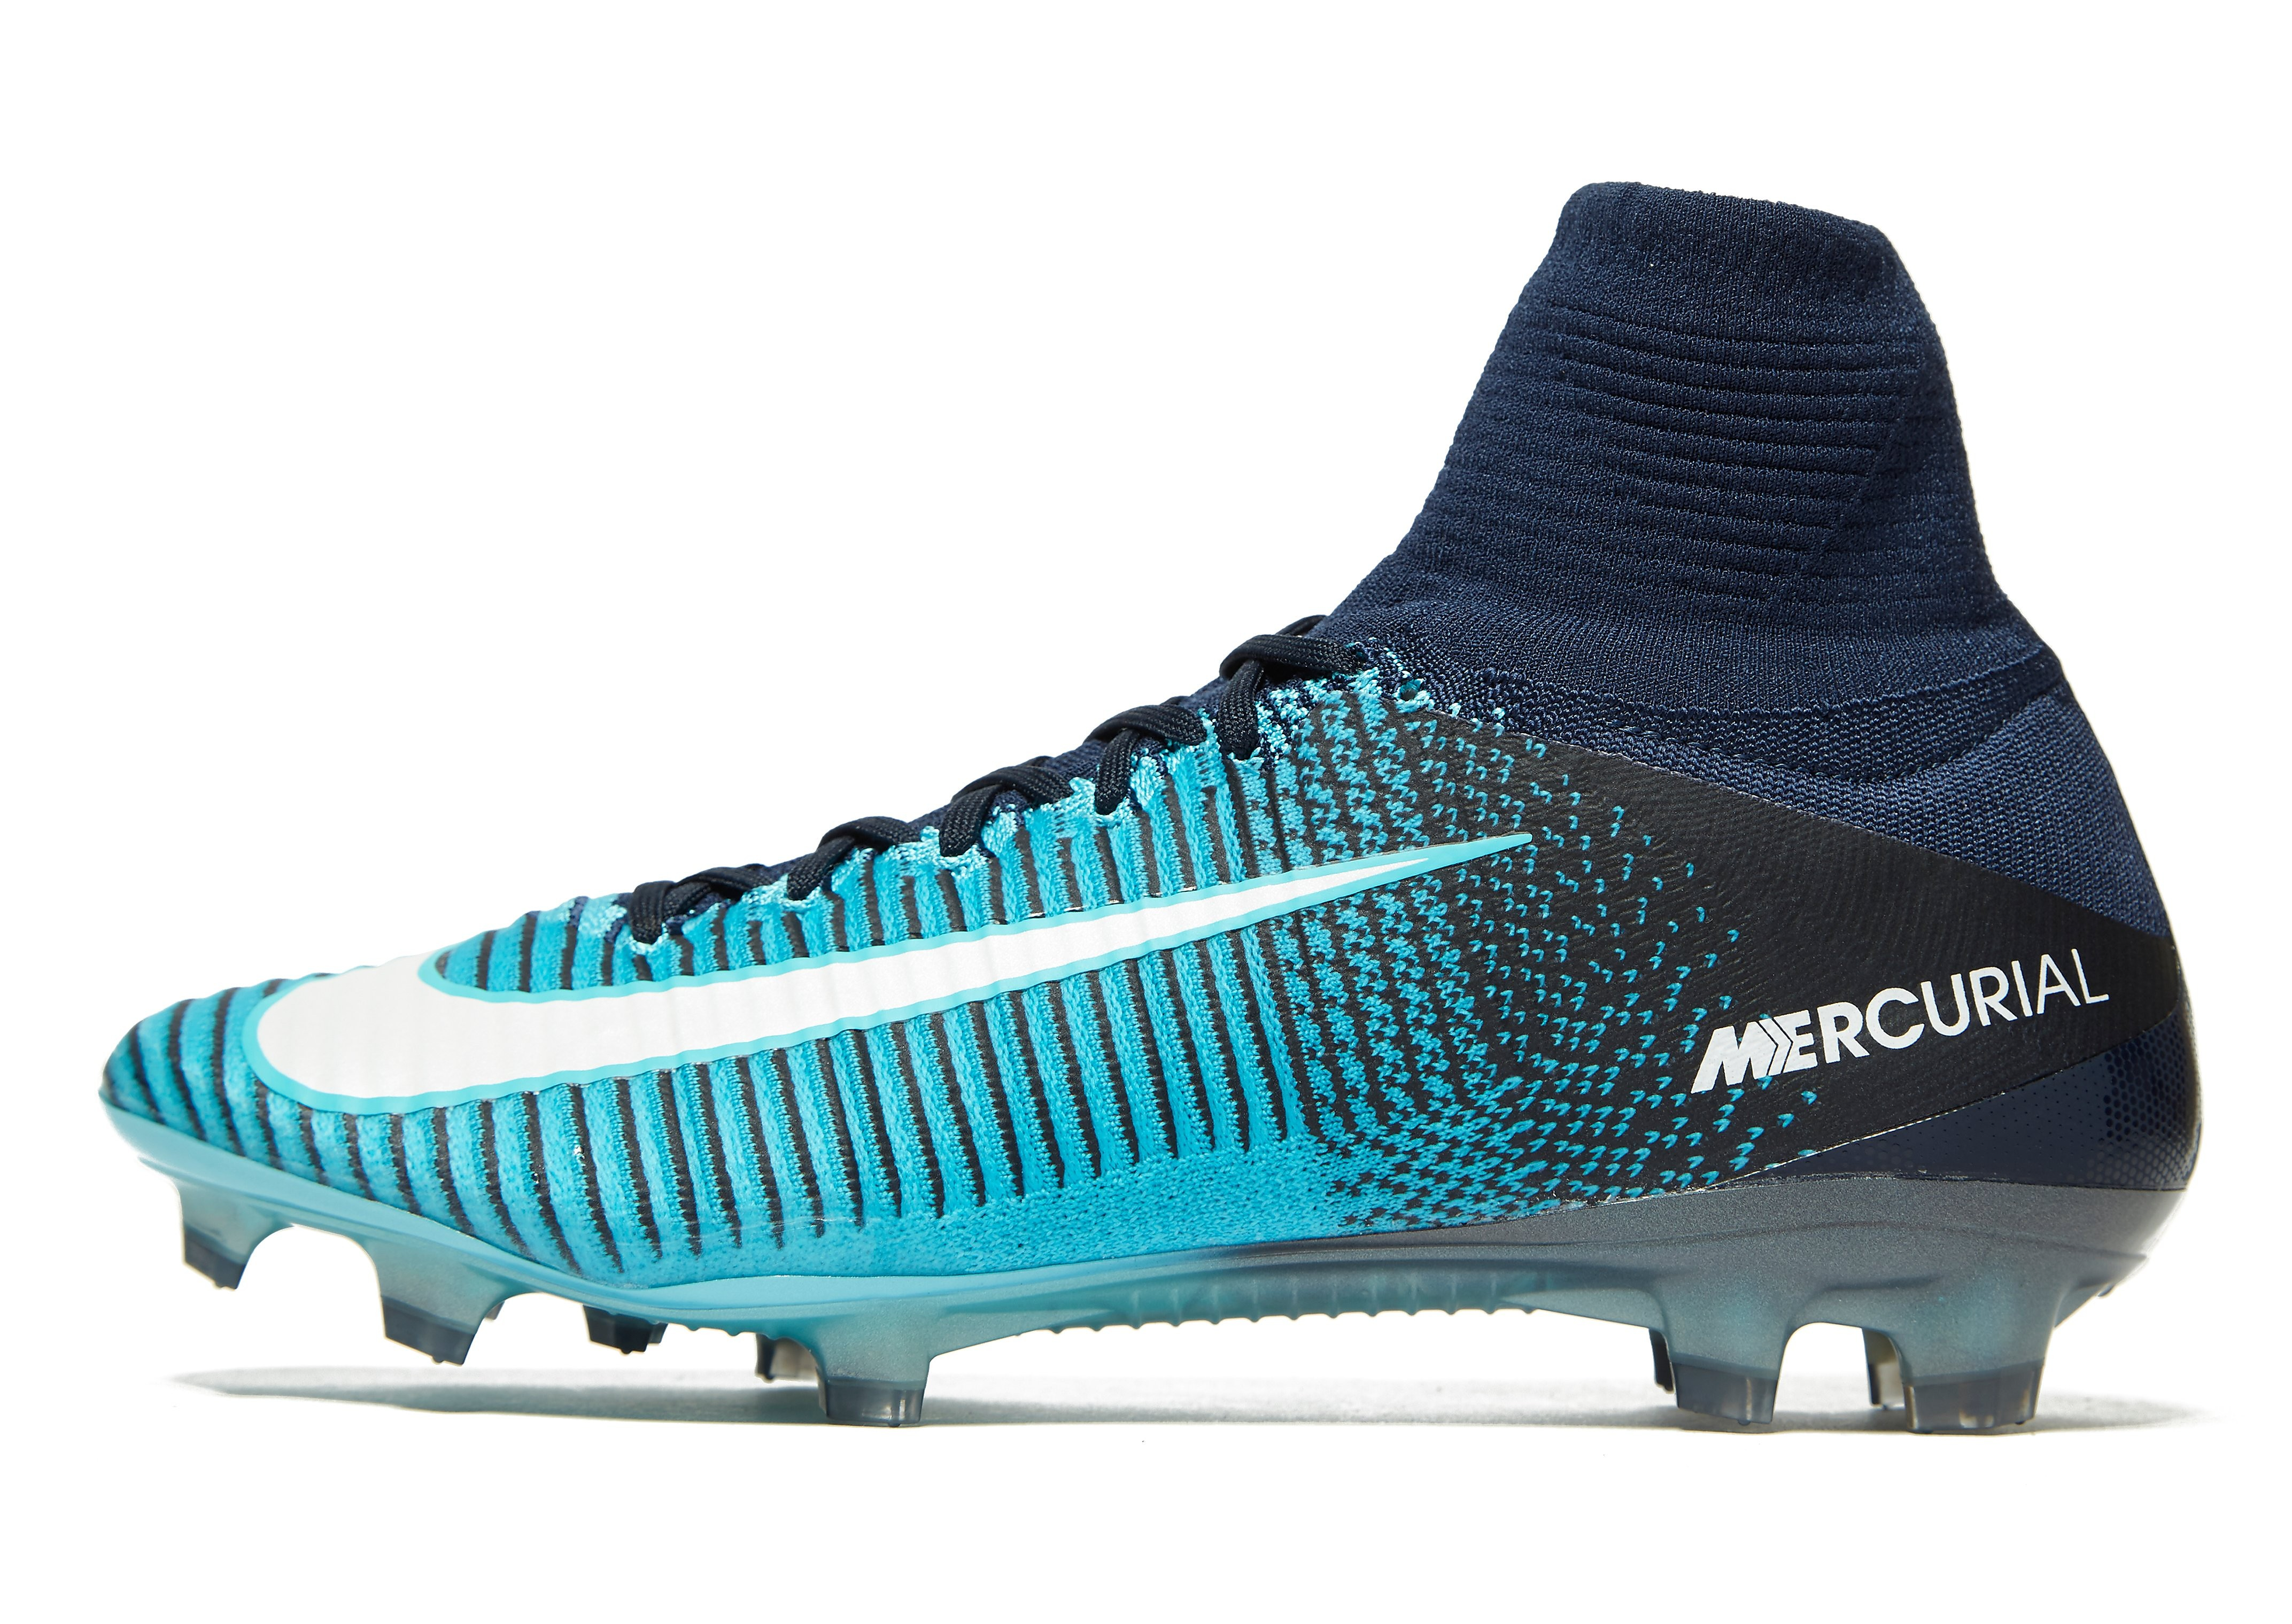 Nike Fire and Ice Mercurial Superfly FG